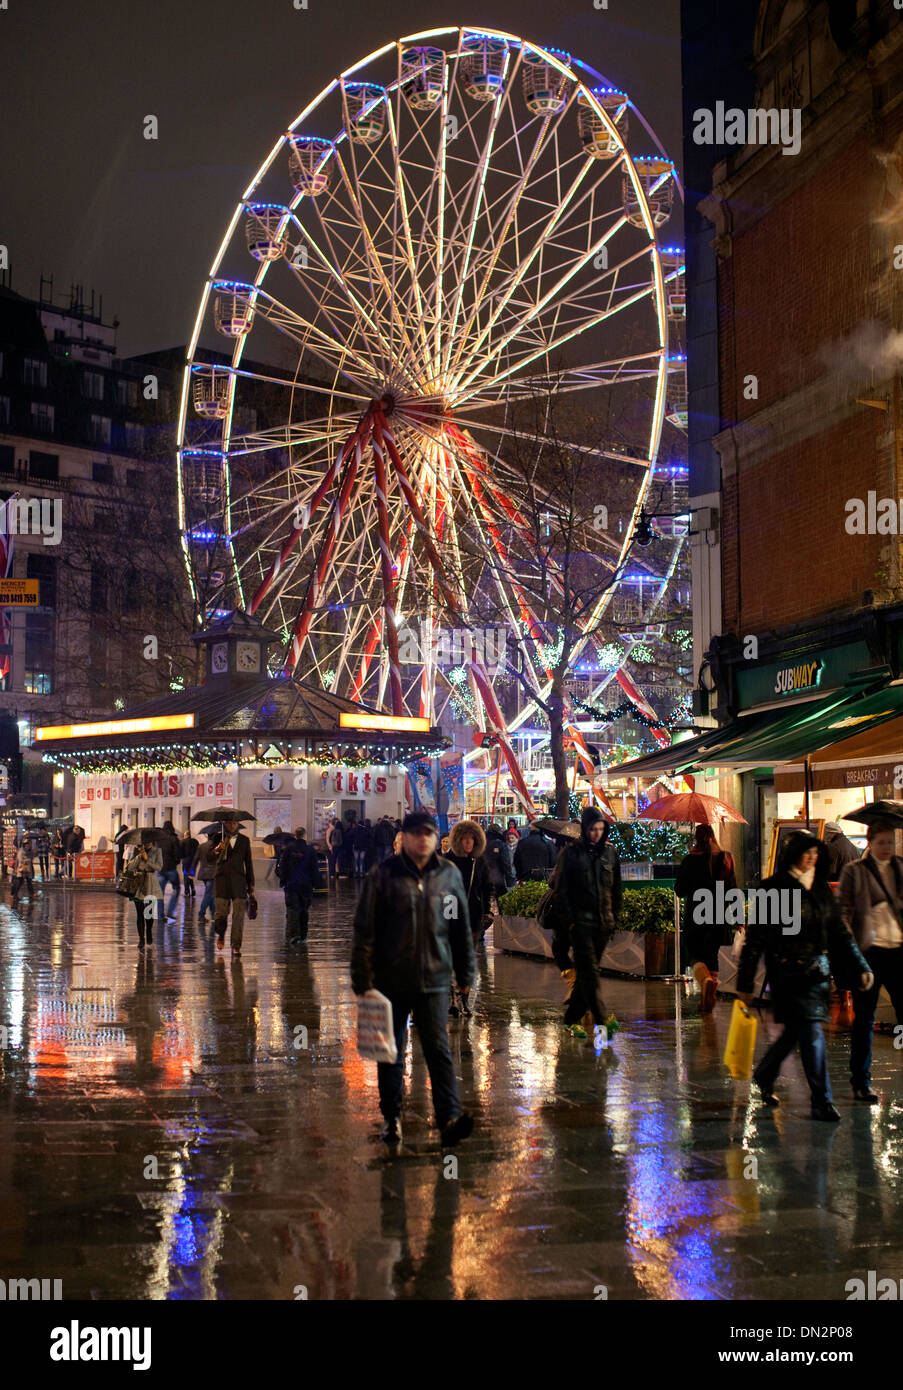 Christmas funfair in Leicester Square, London - Stock Image